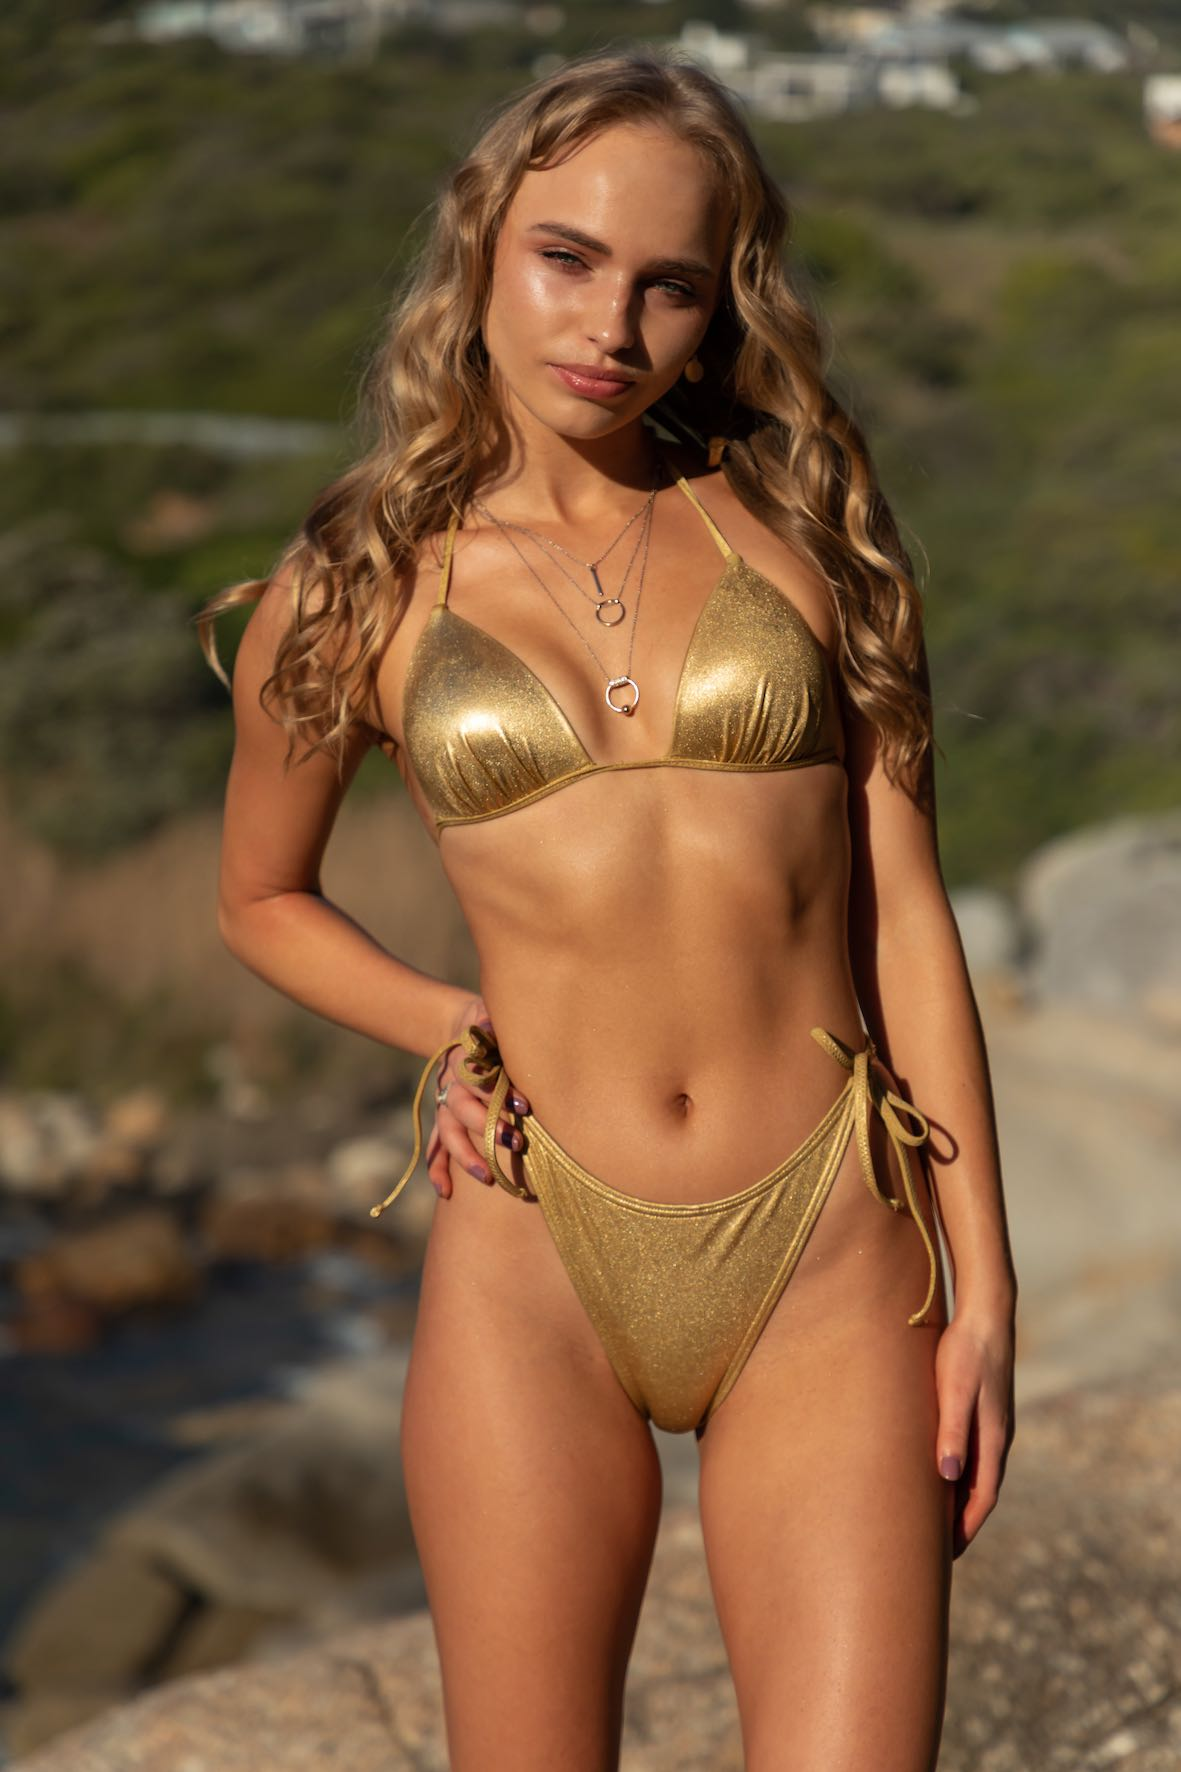 Meet Bianca Ludik in our South African Babes Feature